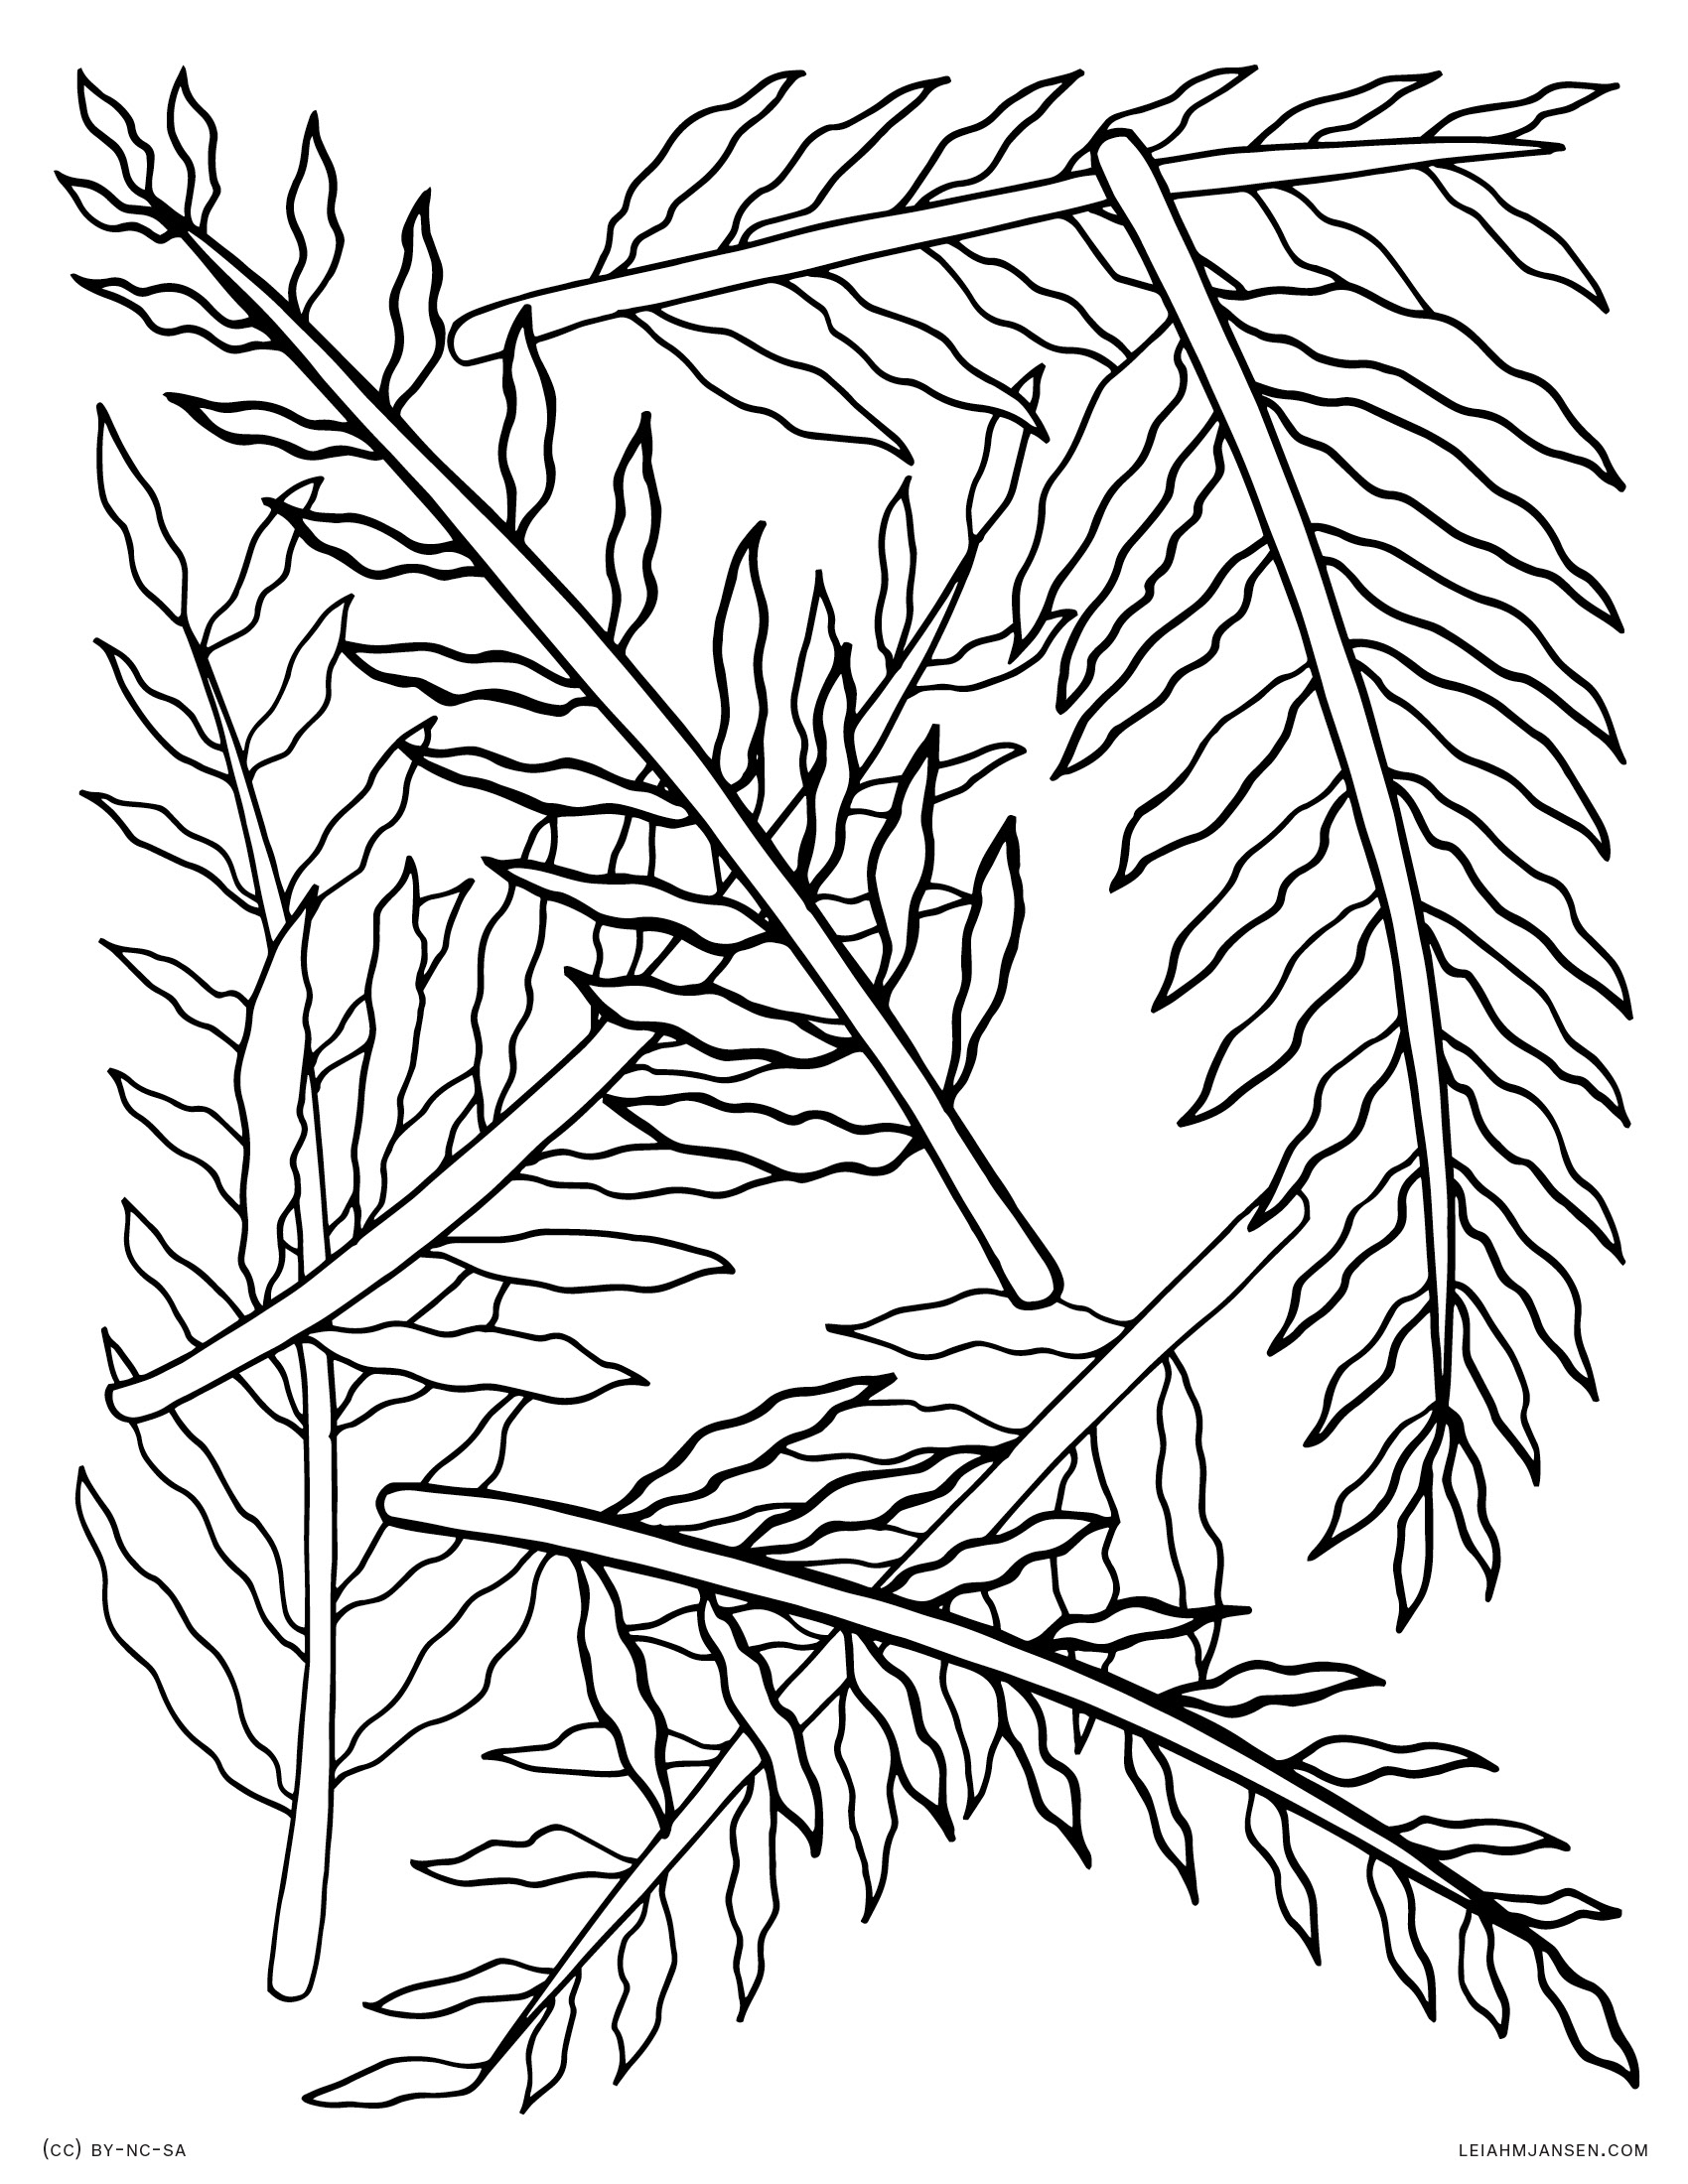 fern coloring pages - photo#14